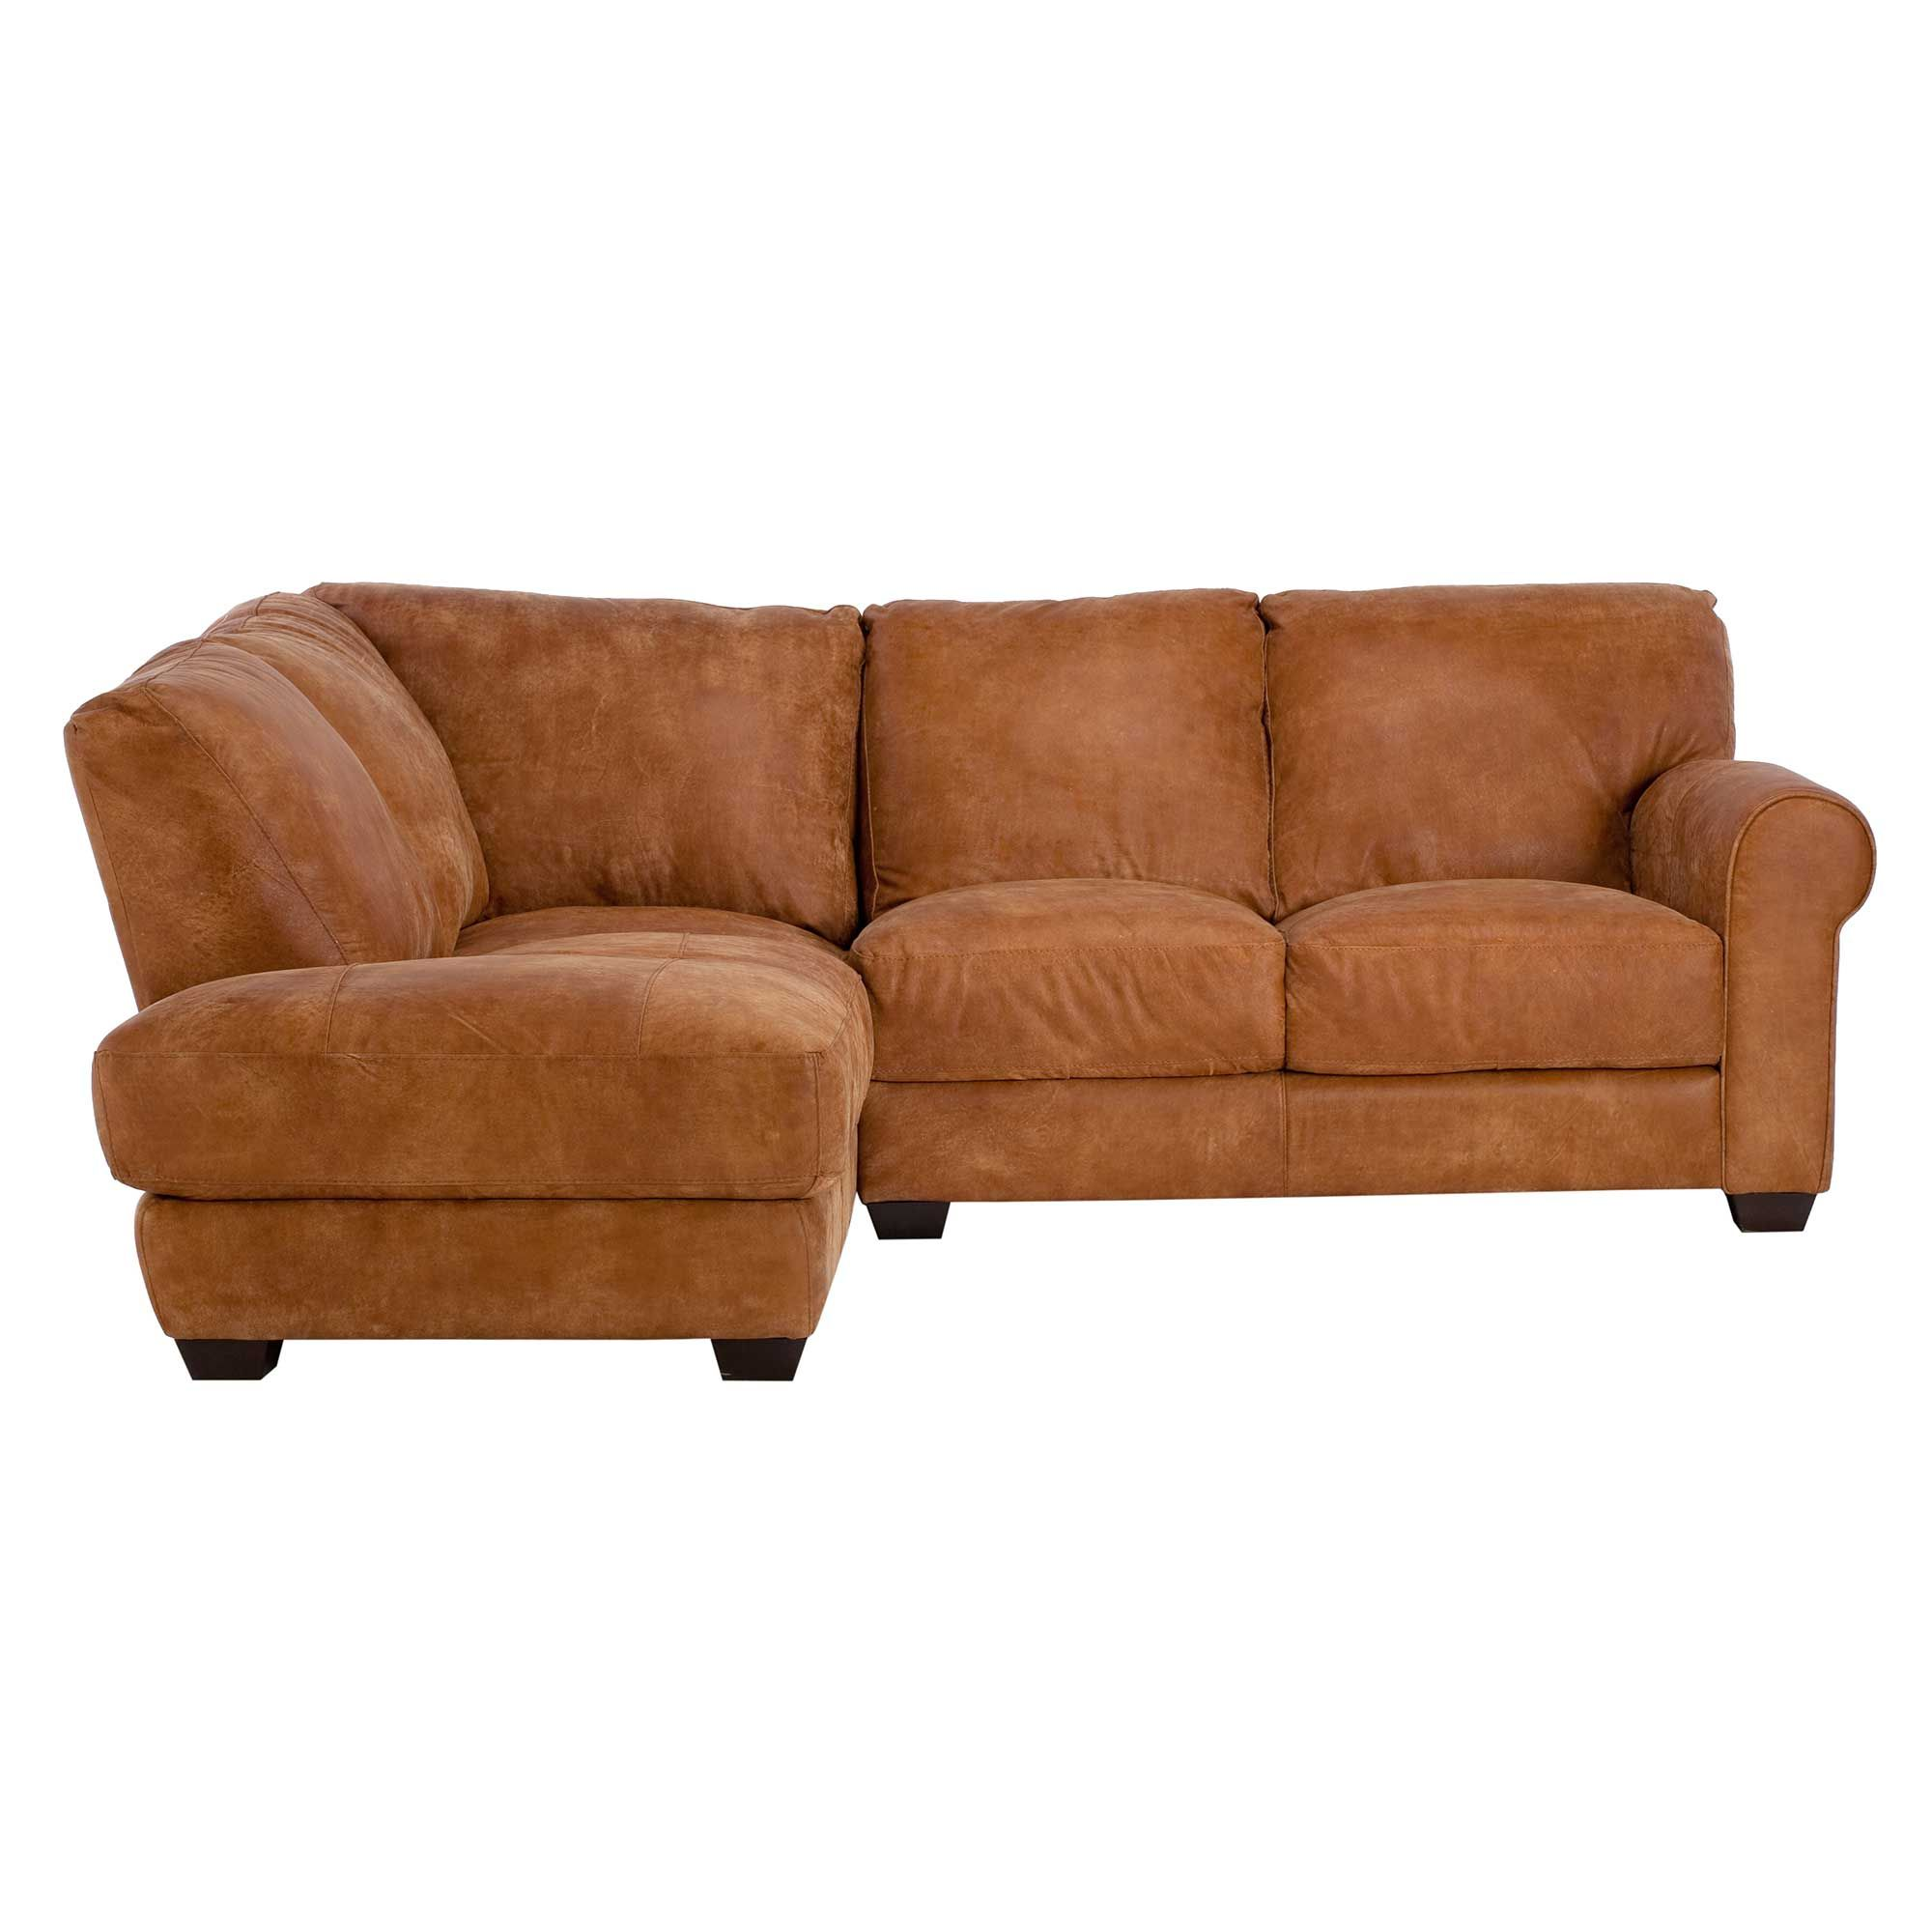 Leather Corner Sofa Lhf Sofas